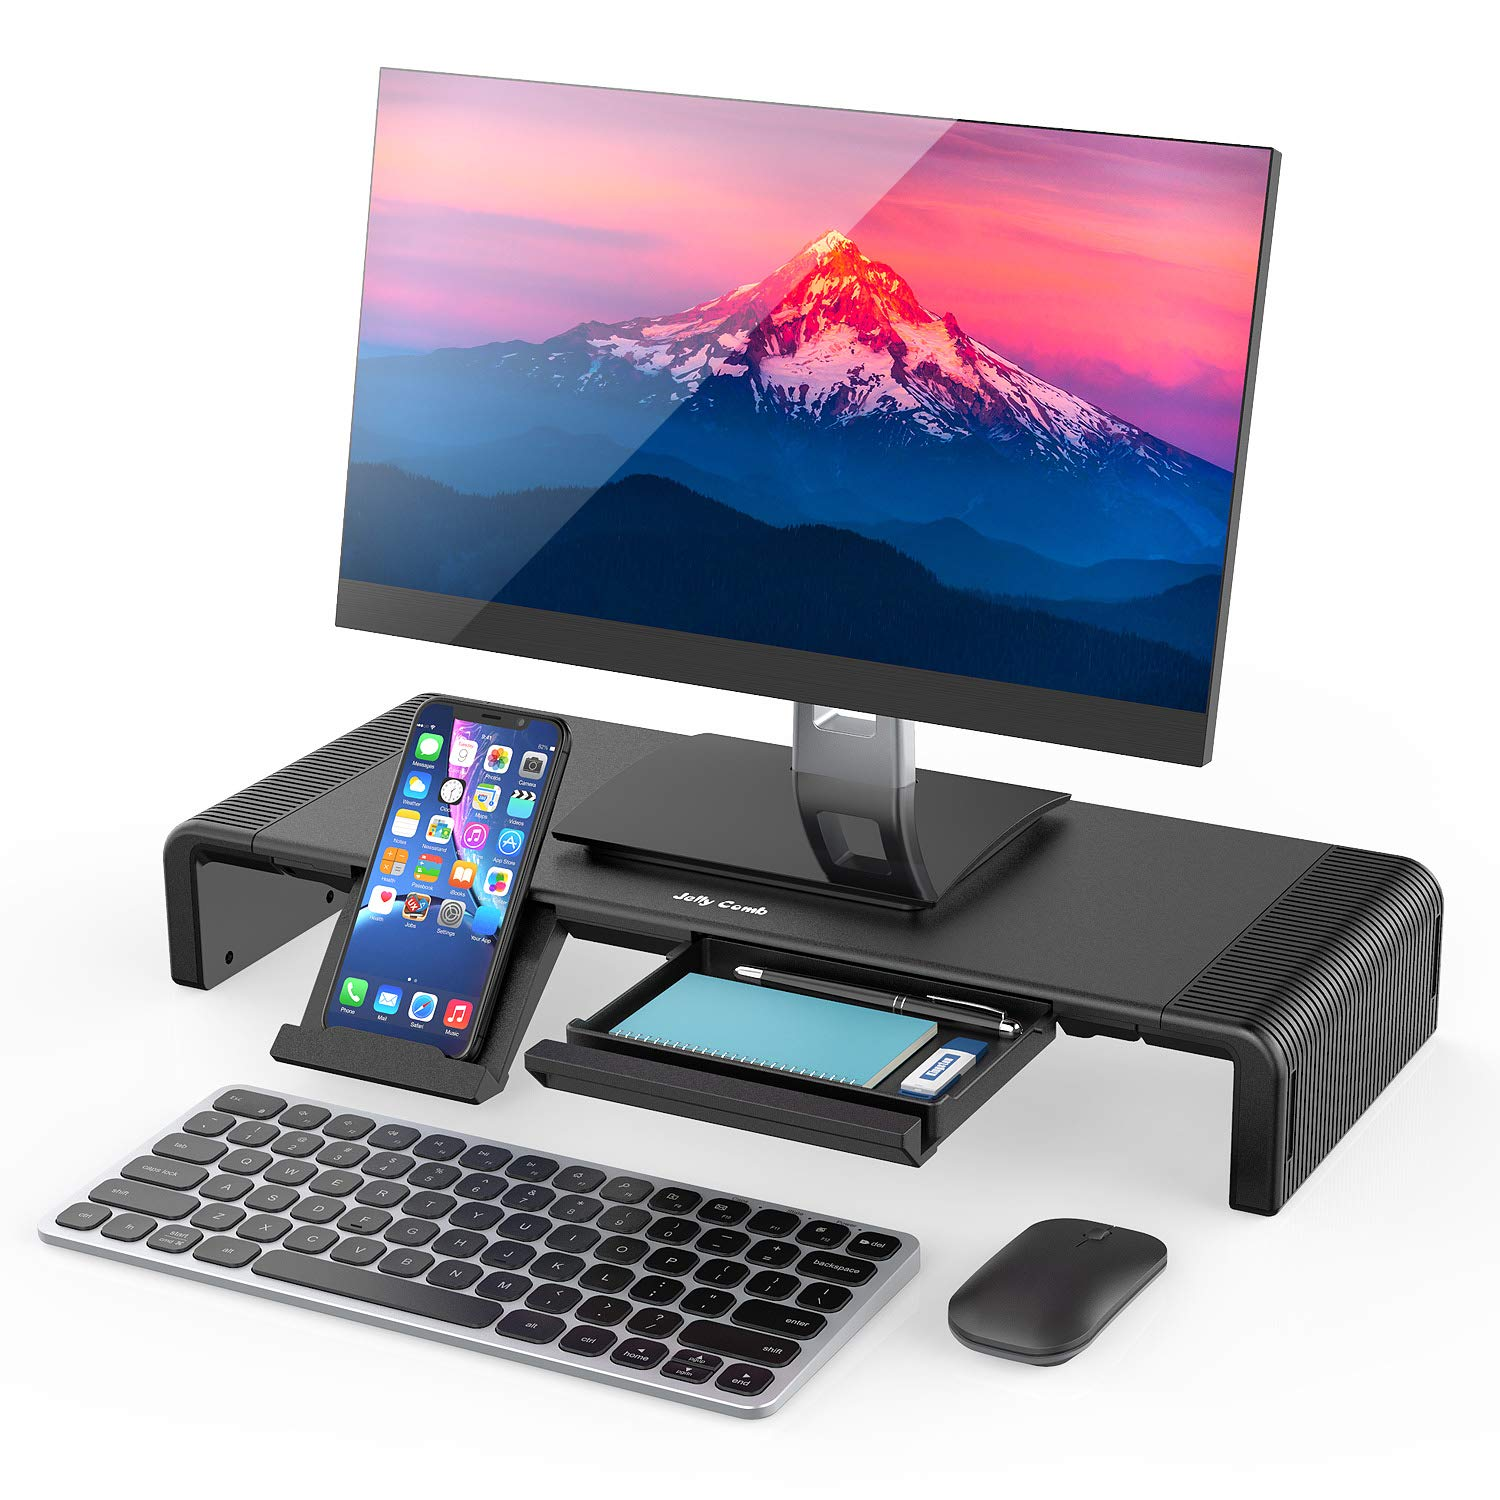 Monitor Stand Riser, Jelly Comb Foldable Computer Monitor Riser, Computer Stand with Storage Drawer, Phone Stand for Computer, Desktop, Laptop, Save Space (Black) by Jelly Comb